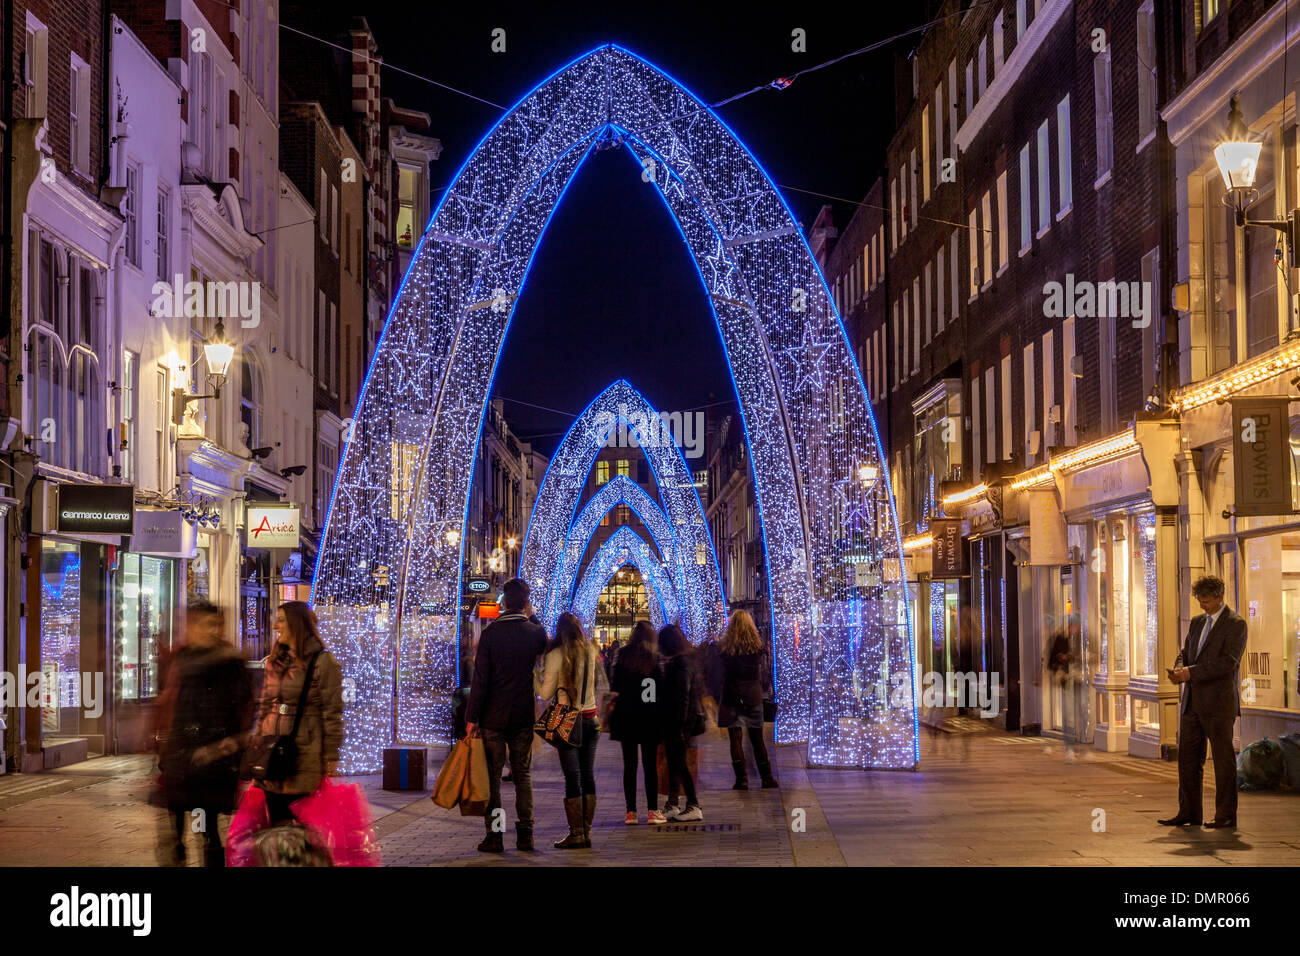 The Christmas Lights In South Molton Street, London, England - Stock Image